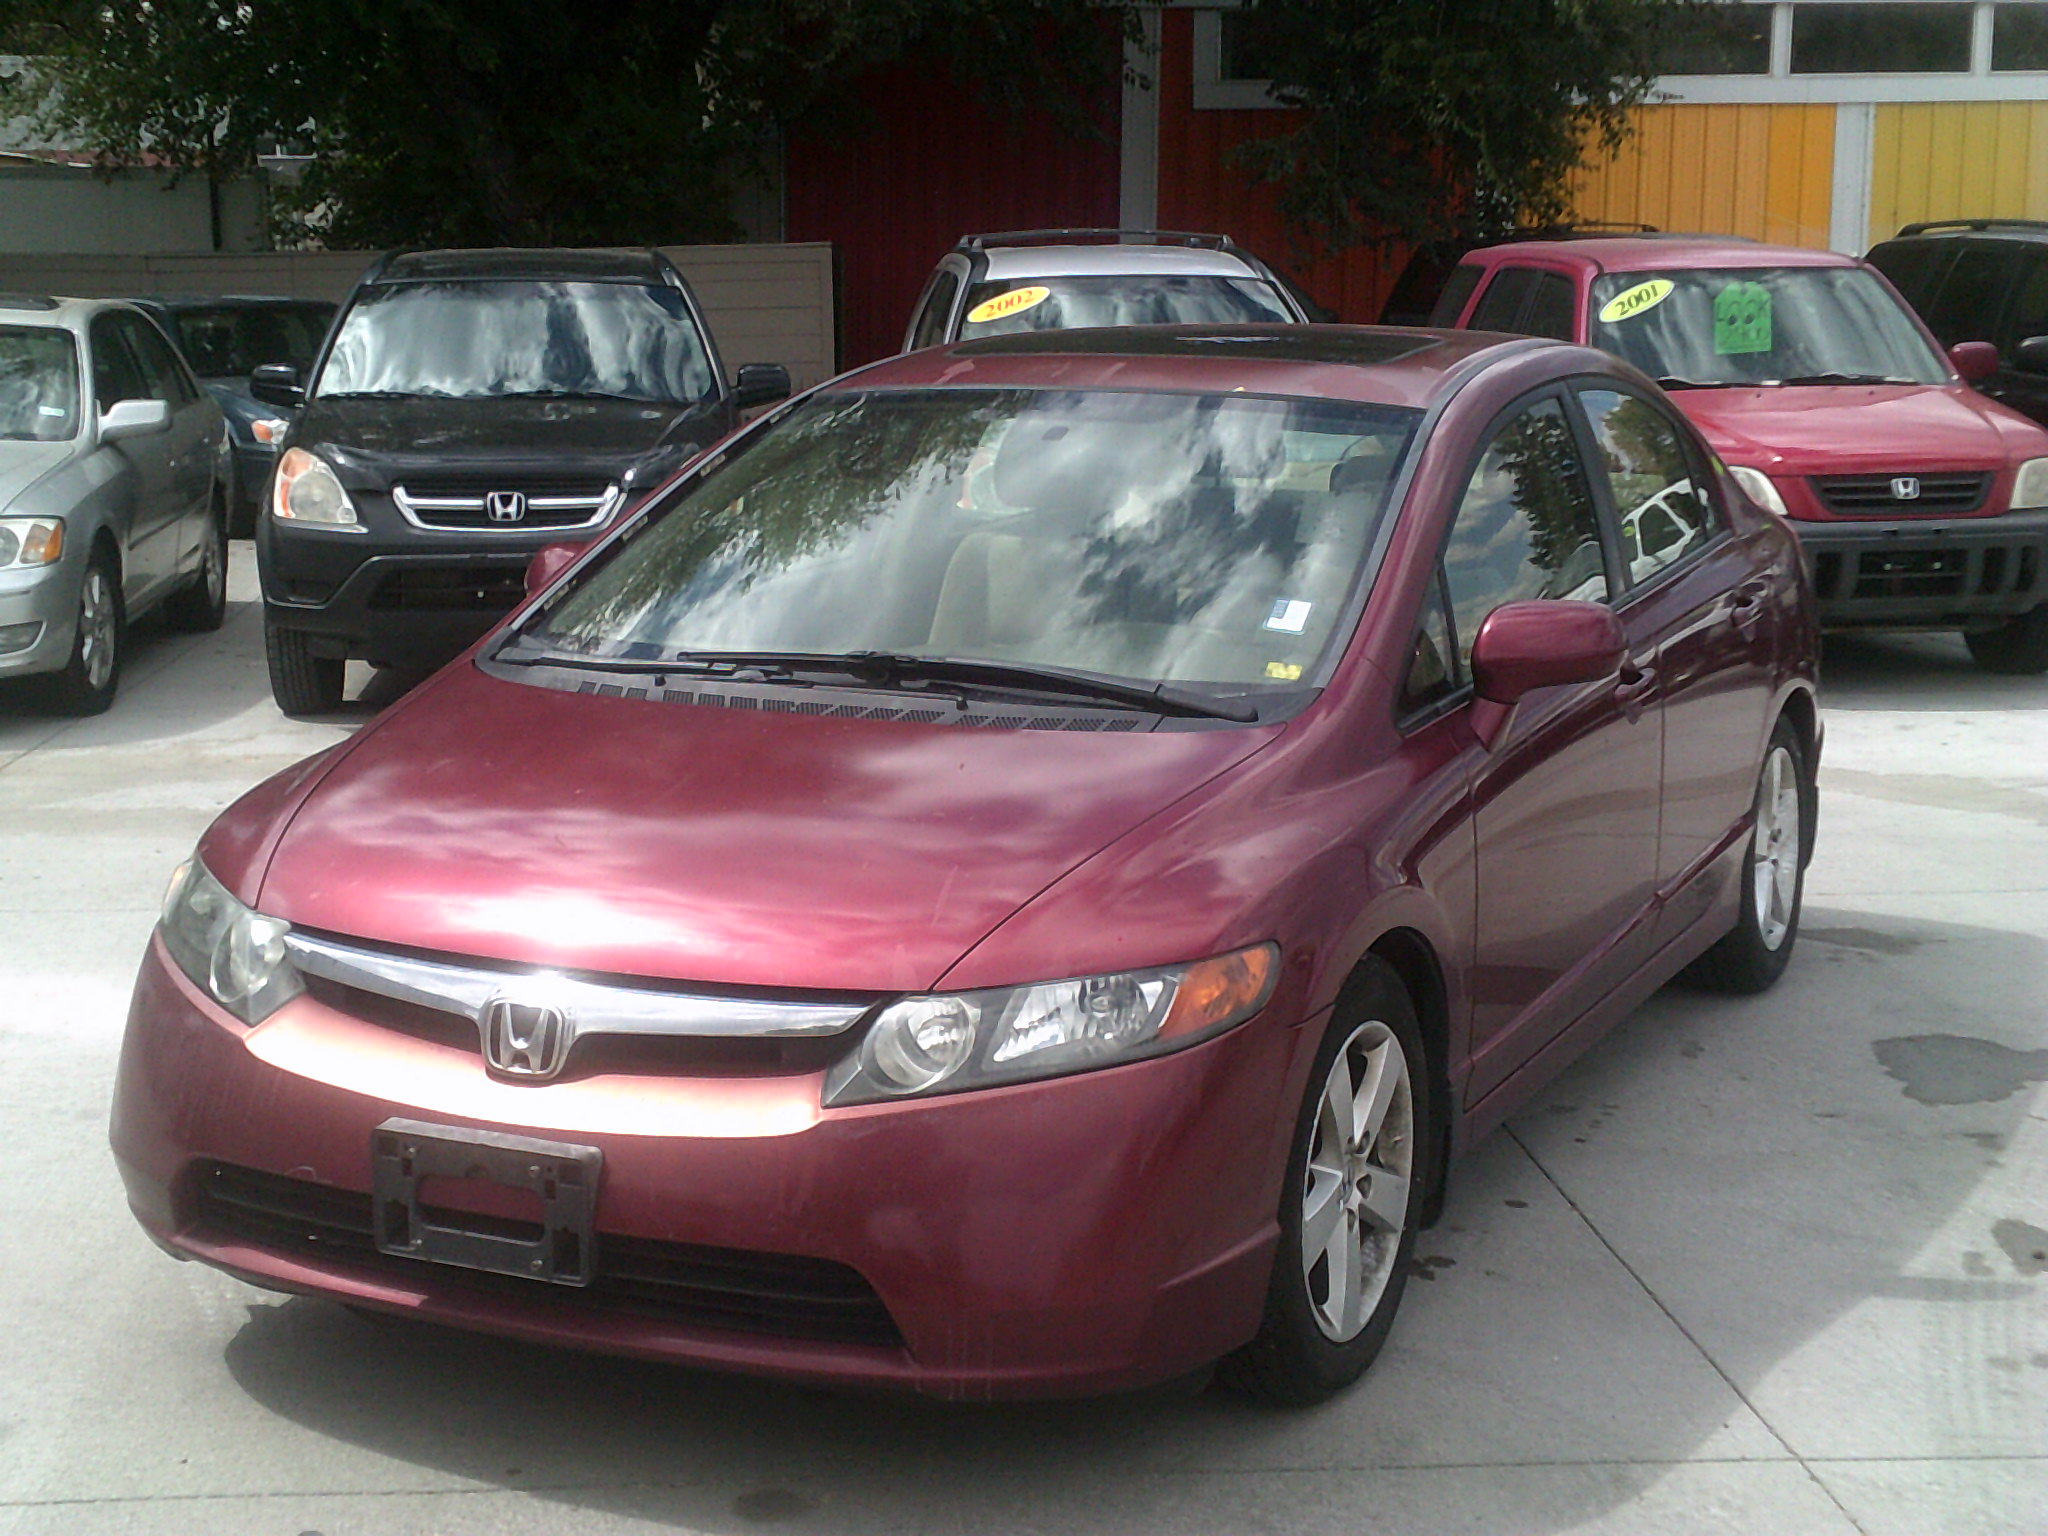 This Civic Gets 25 Miles Per Gallon In The City And 36 Mpg On Highway 138k Automatic Ac Sunroof Cd Player